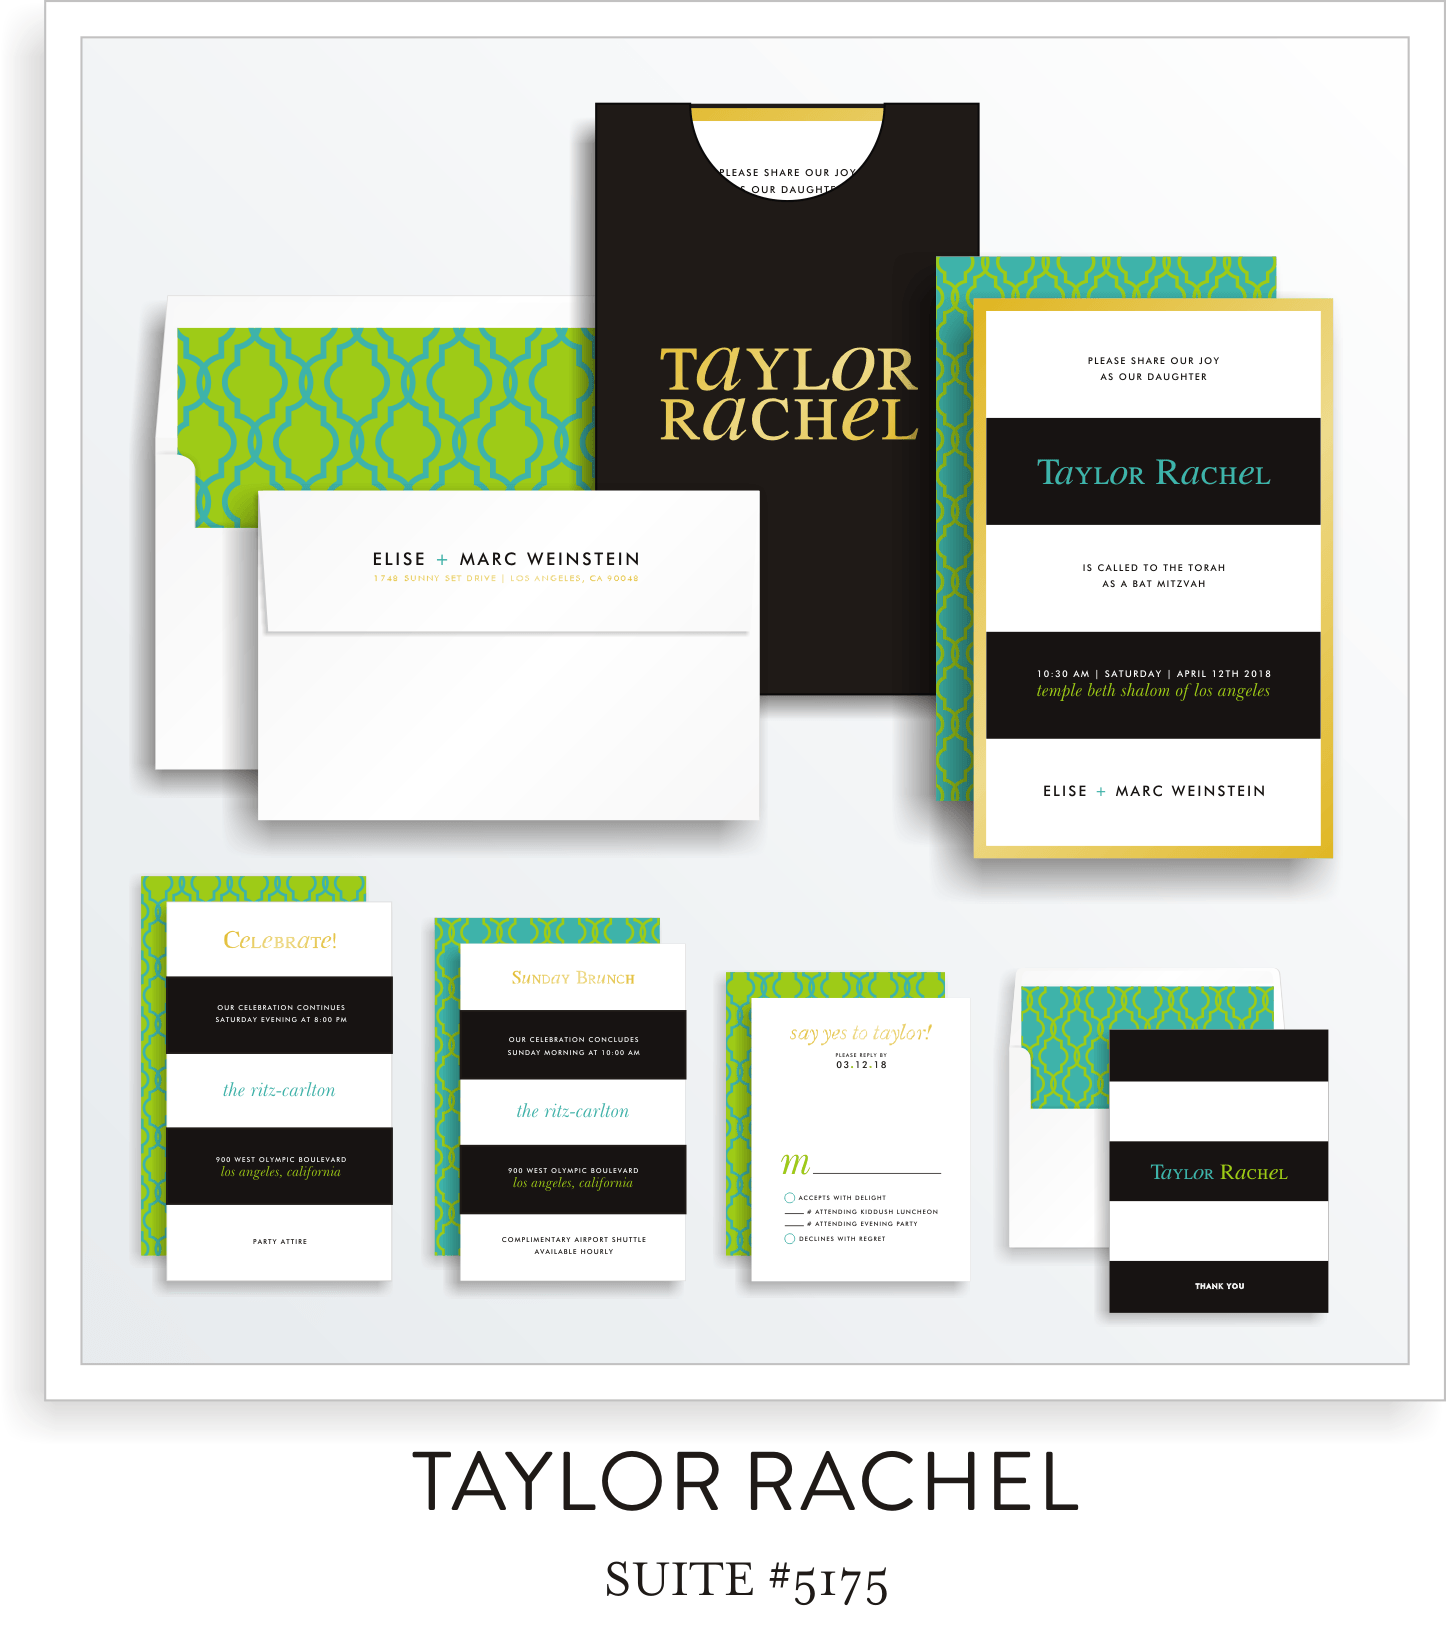 Copy of Bat Mitzvah Invitation Suite 5175 - Taylor Rachel